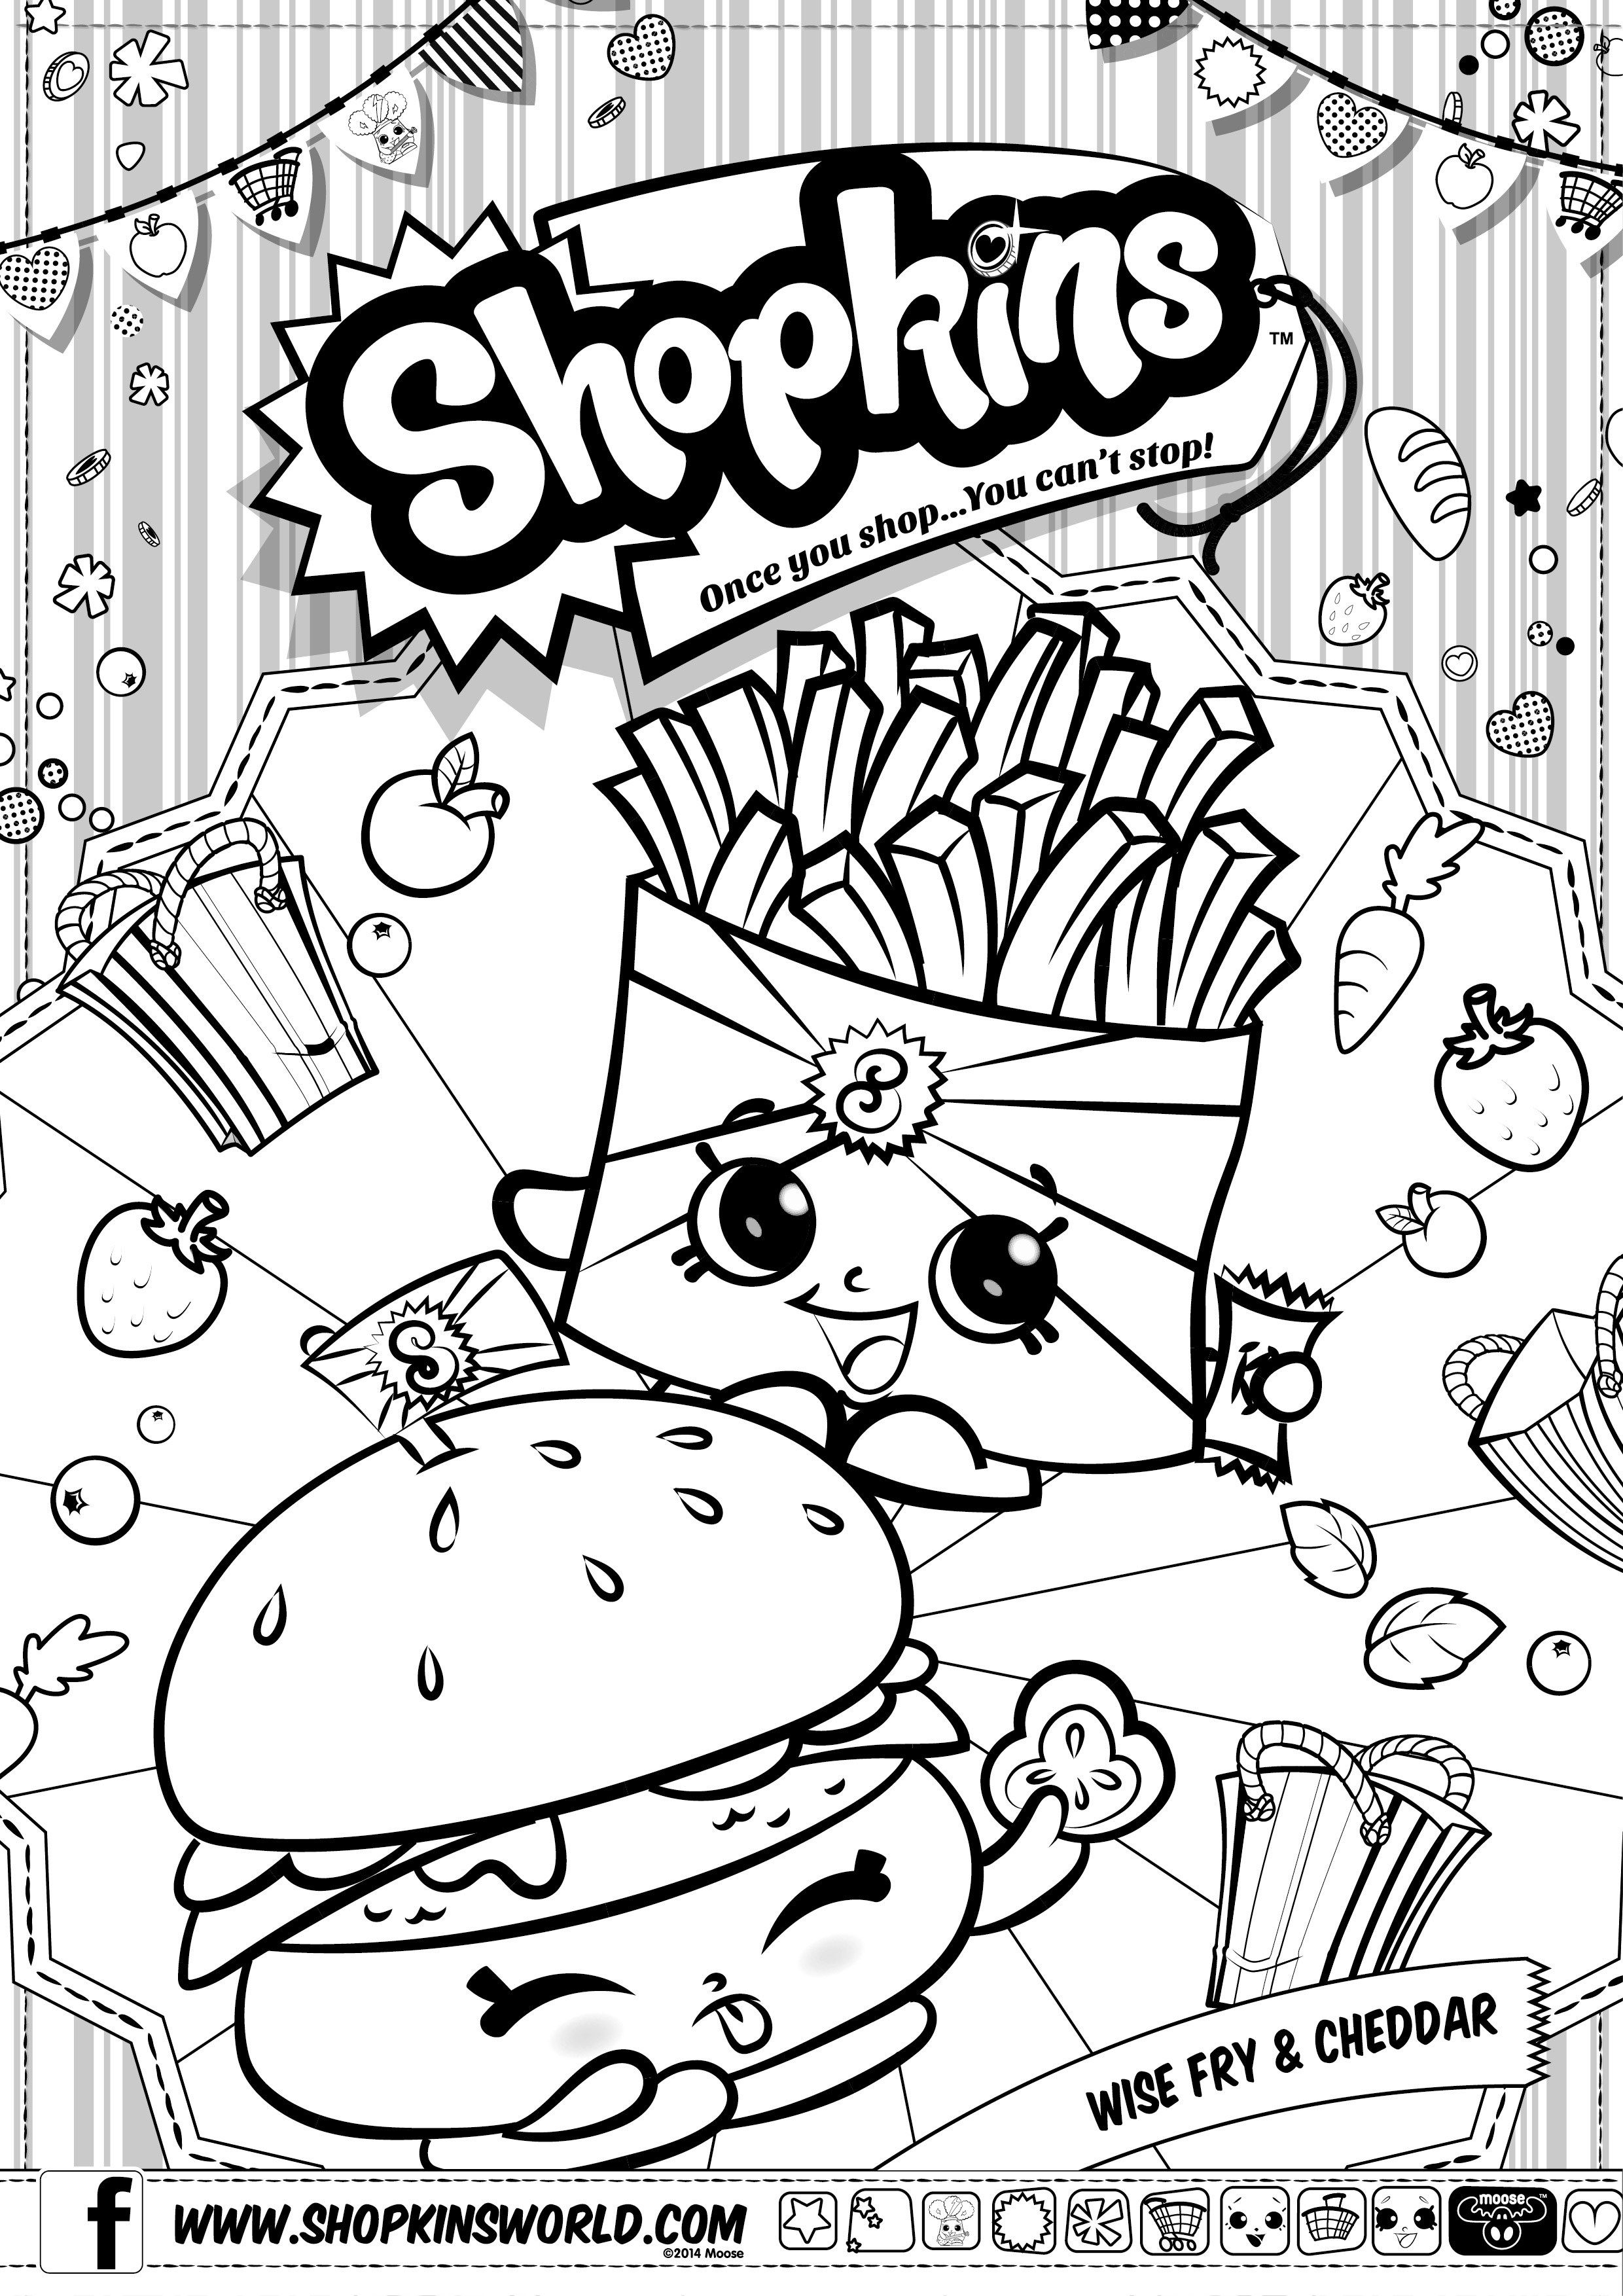 Shopkins Free Downloads Shopkin Coloring Pages Valentine Coloring Pages Shopkins Colouring Pages